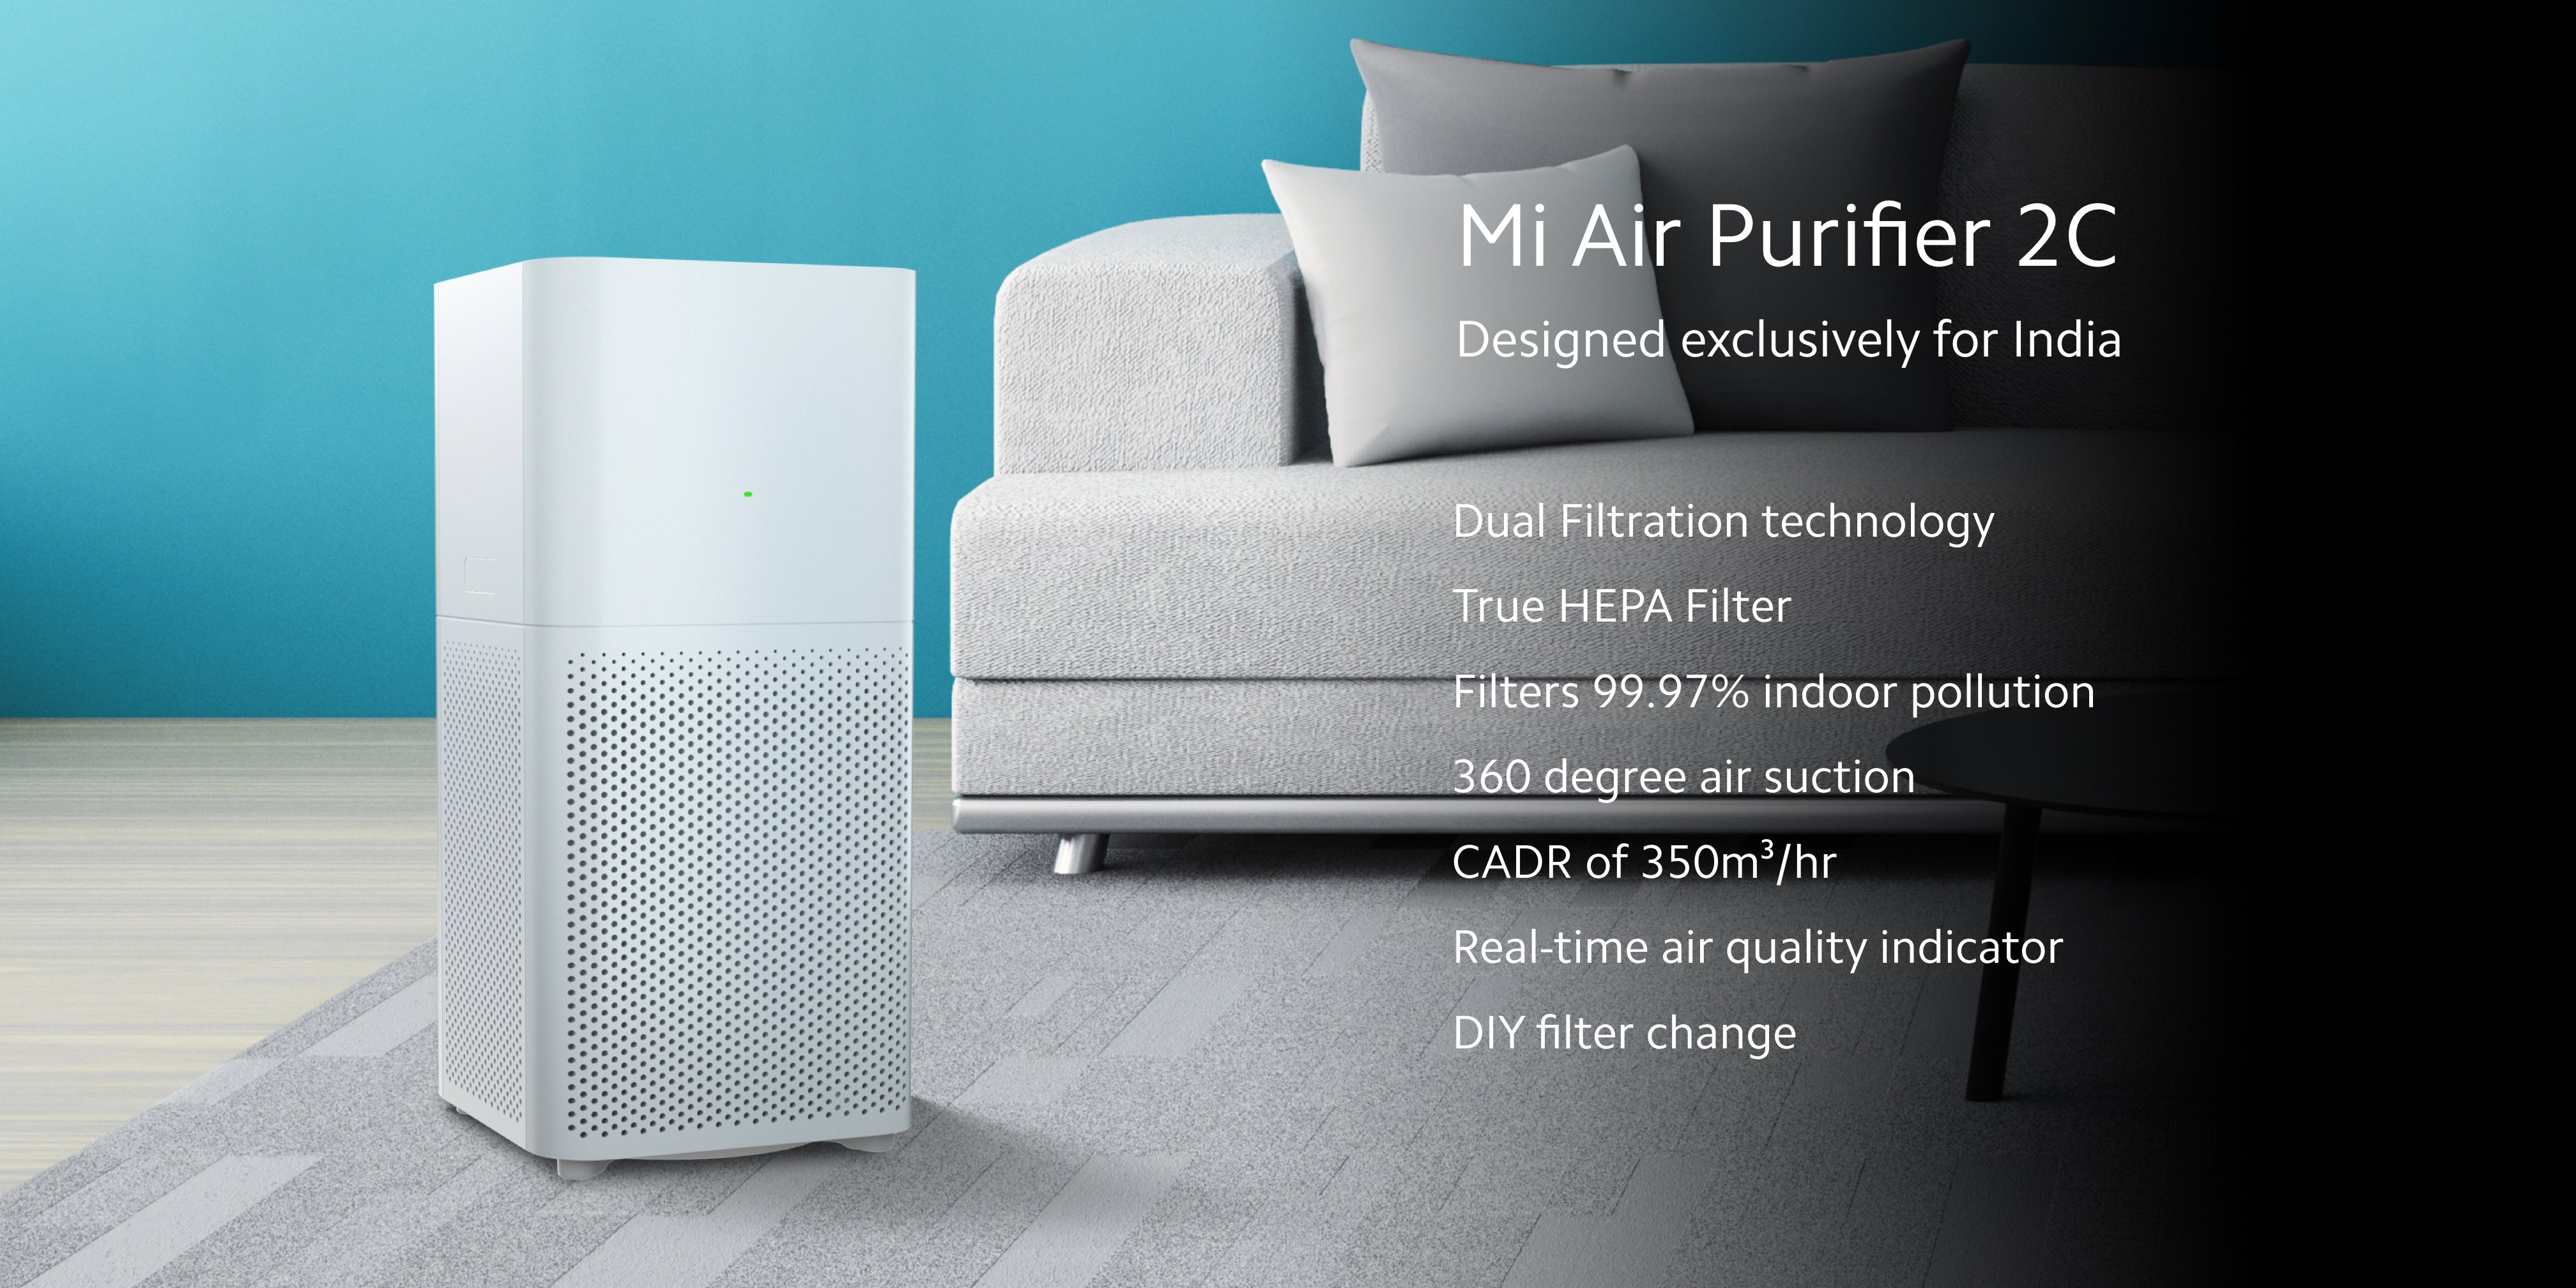 New Xiaomi Mi Air Purifier 2C air purifier even more economical. Xiaomi Addicted News